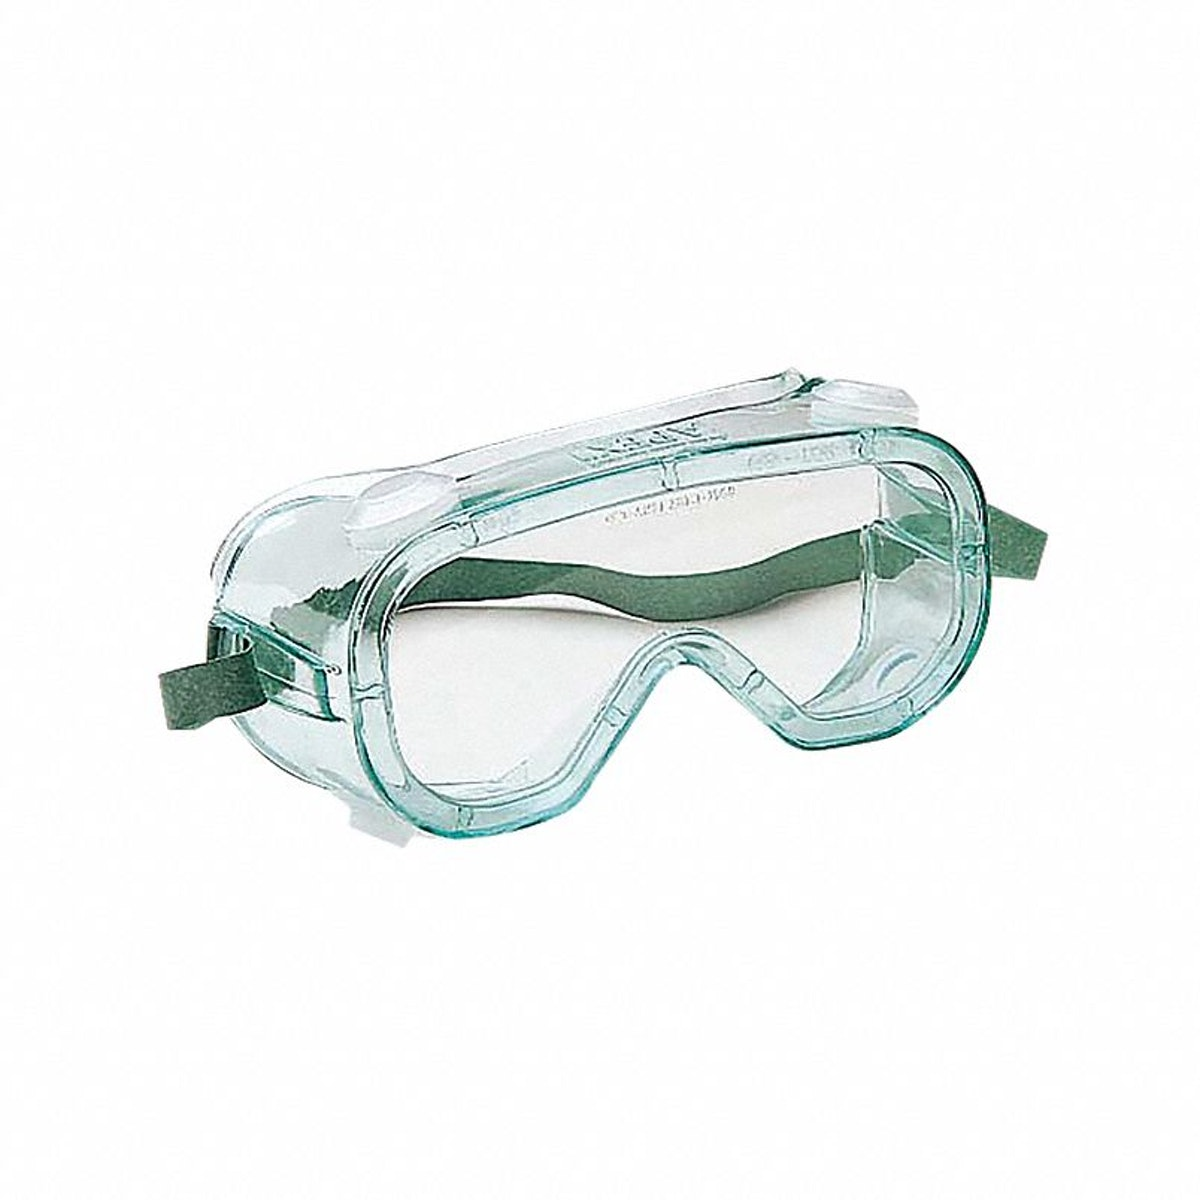 Kleenguard Uncoated Indirect Protective Goggles, Clear Lens